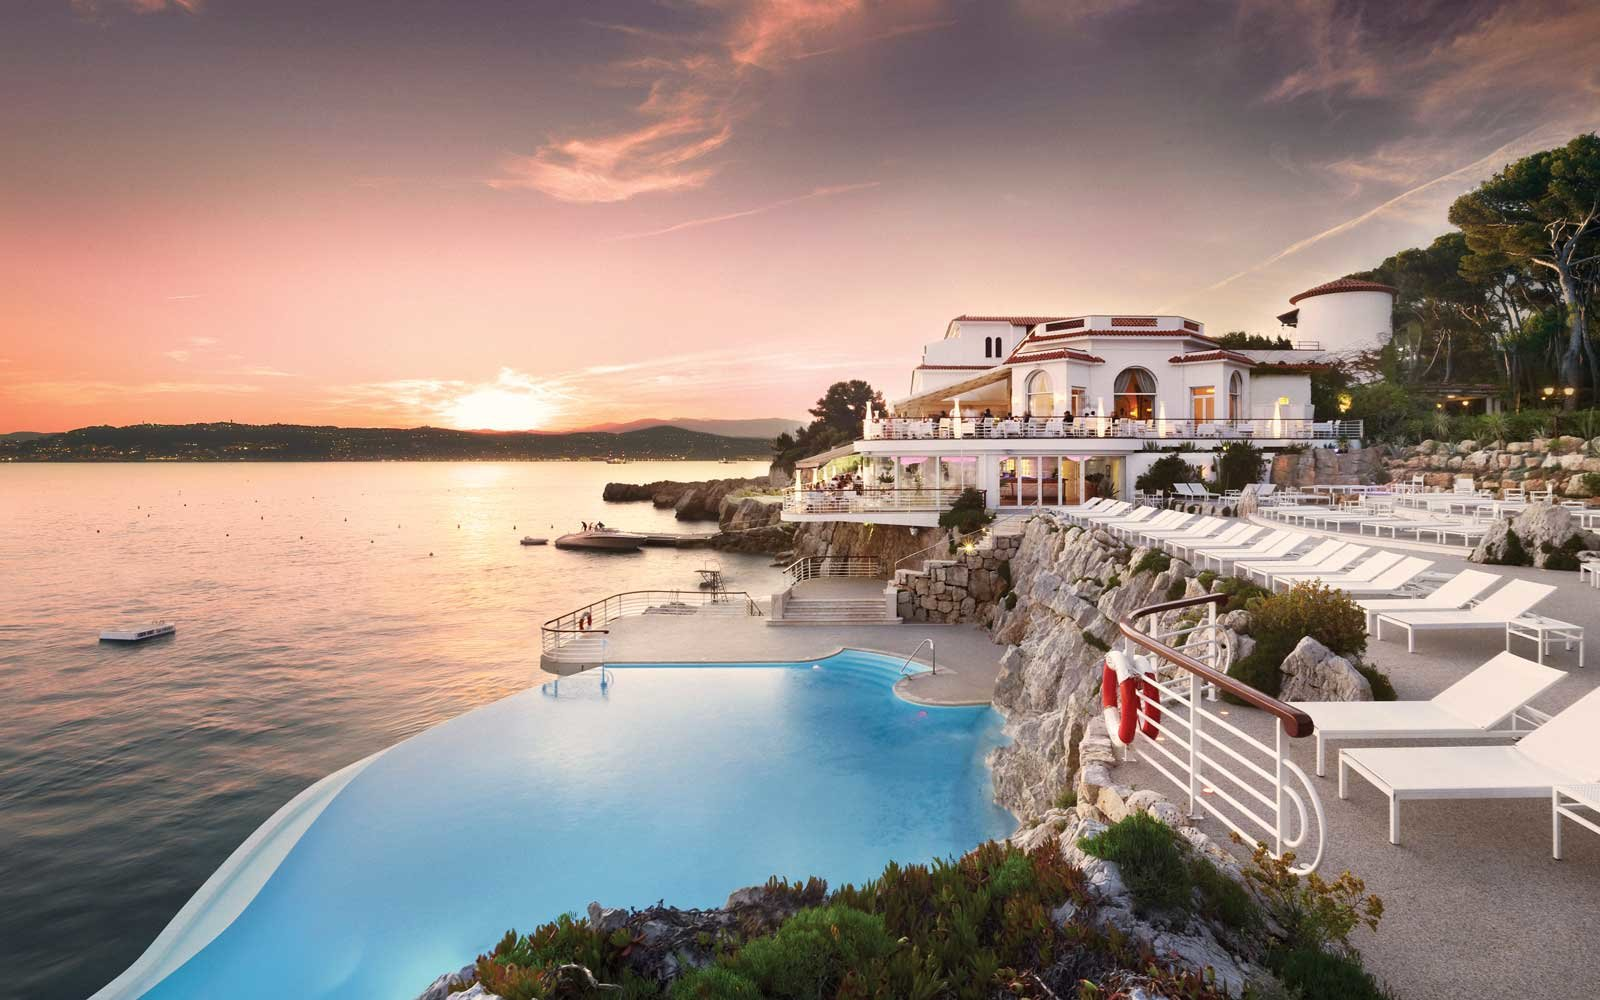 Top Romantic Hotels: Hotel du Cap Eden Roc, Antibes, France